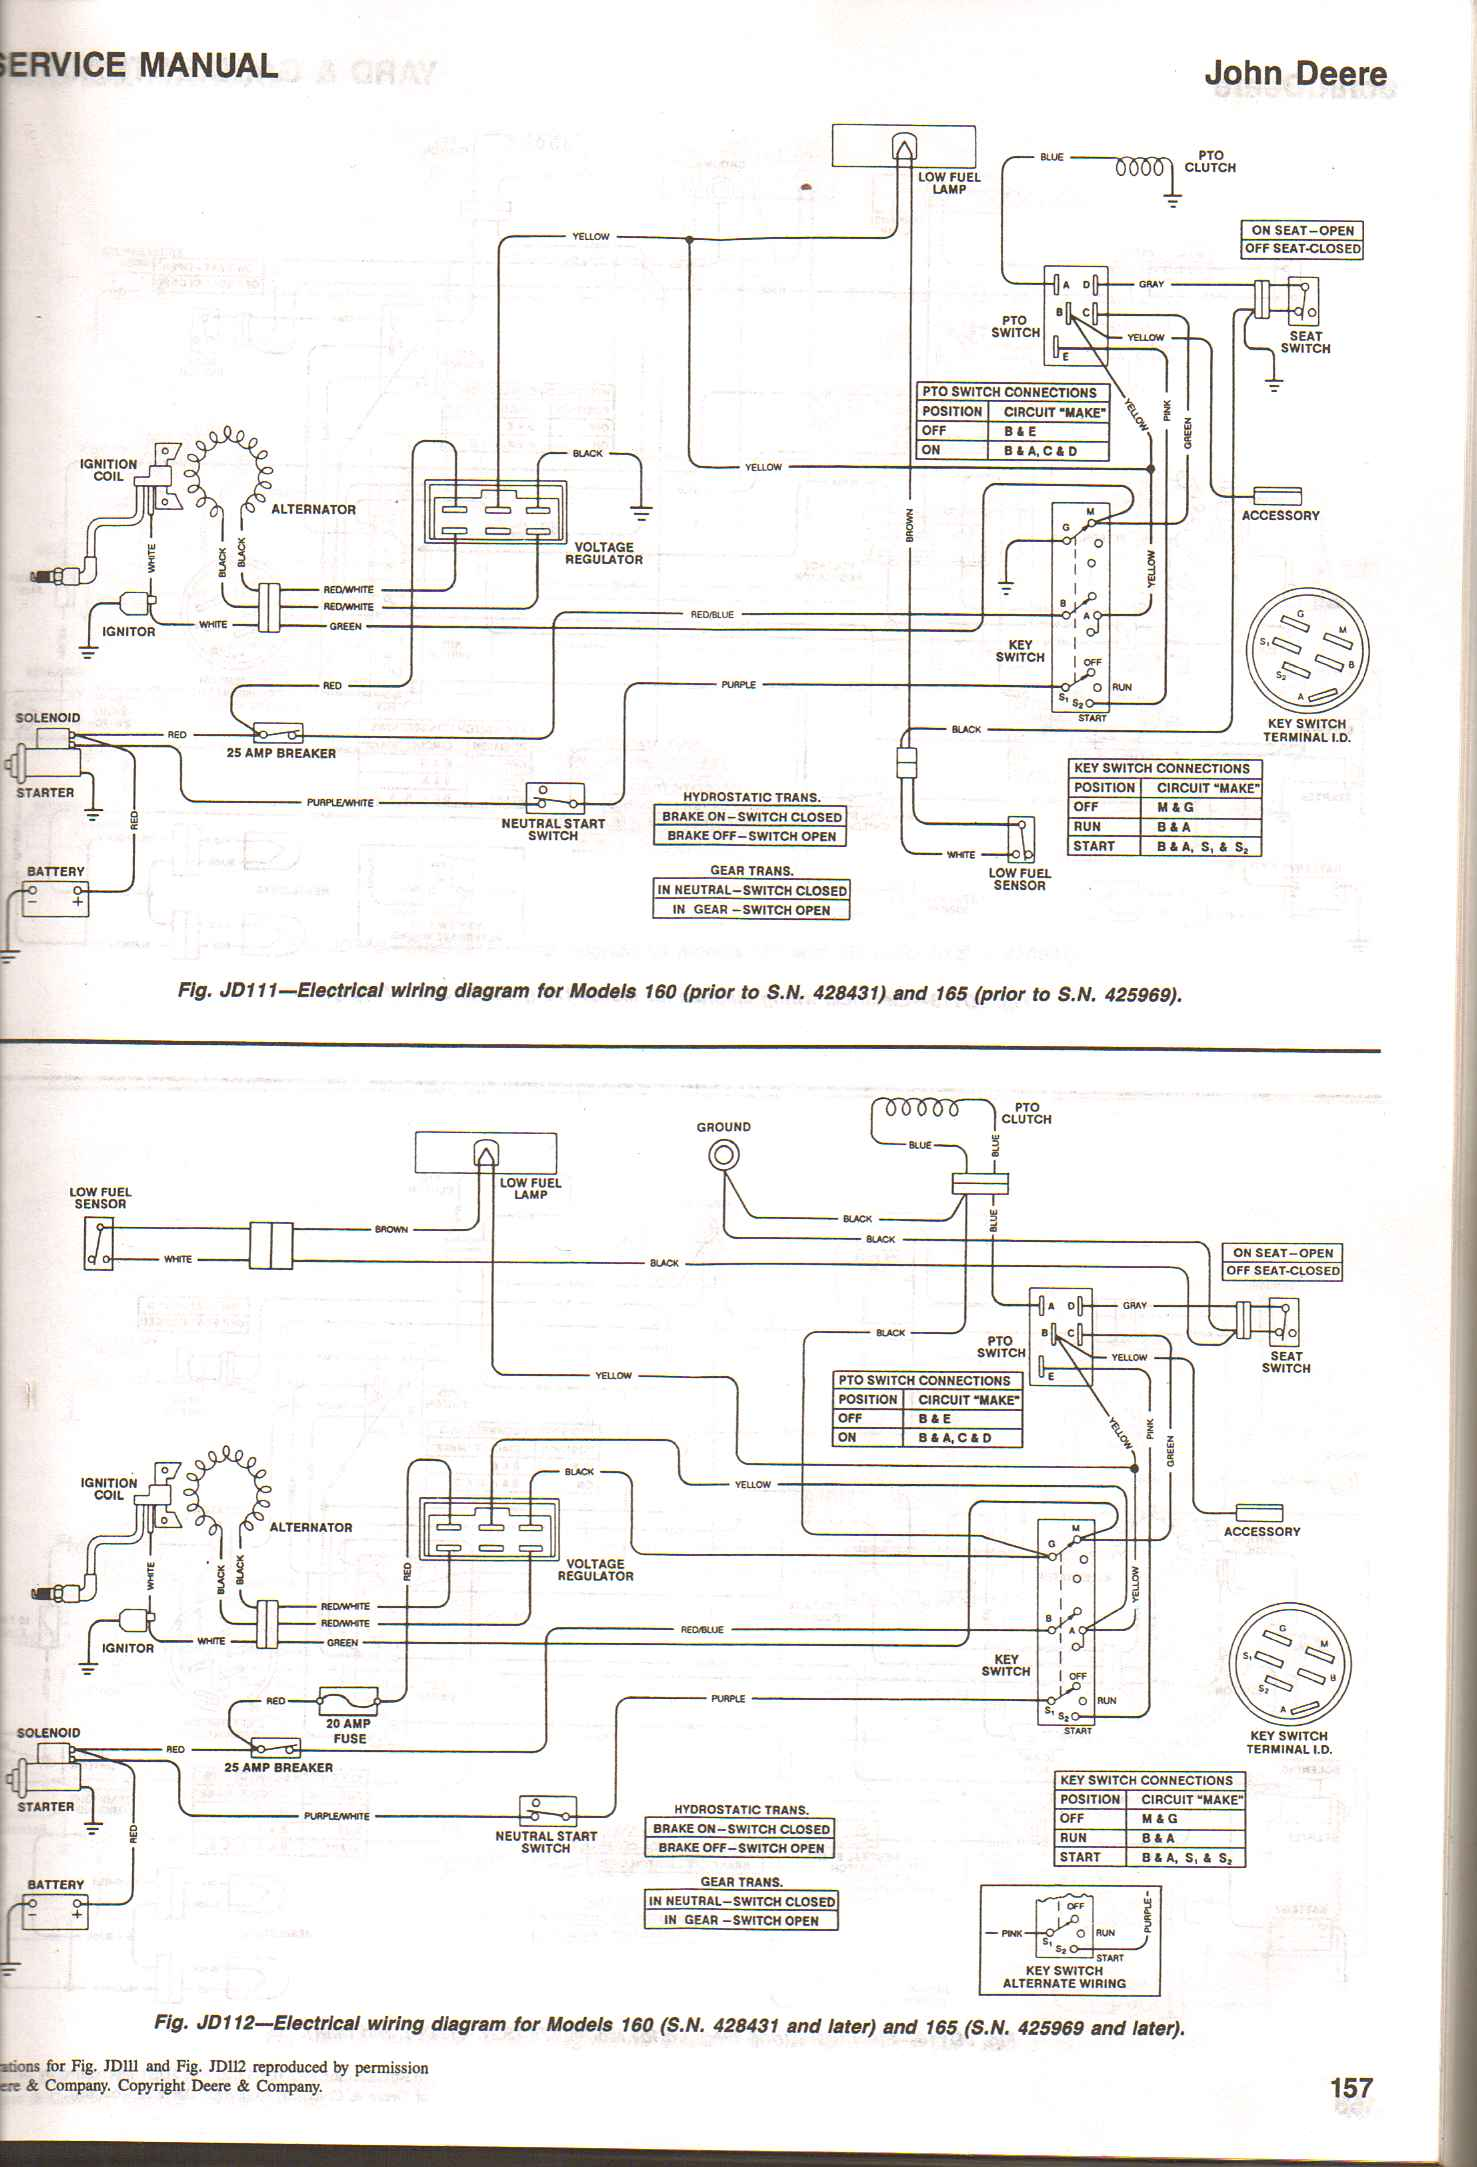 2012 07 14_230748_deere_160_electrical tecumseh ohv130 wiring diagram efcaviation com wall heater wiring diagram at creativeand.co